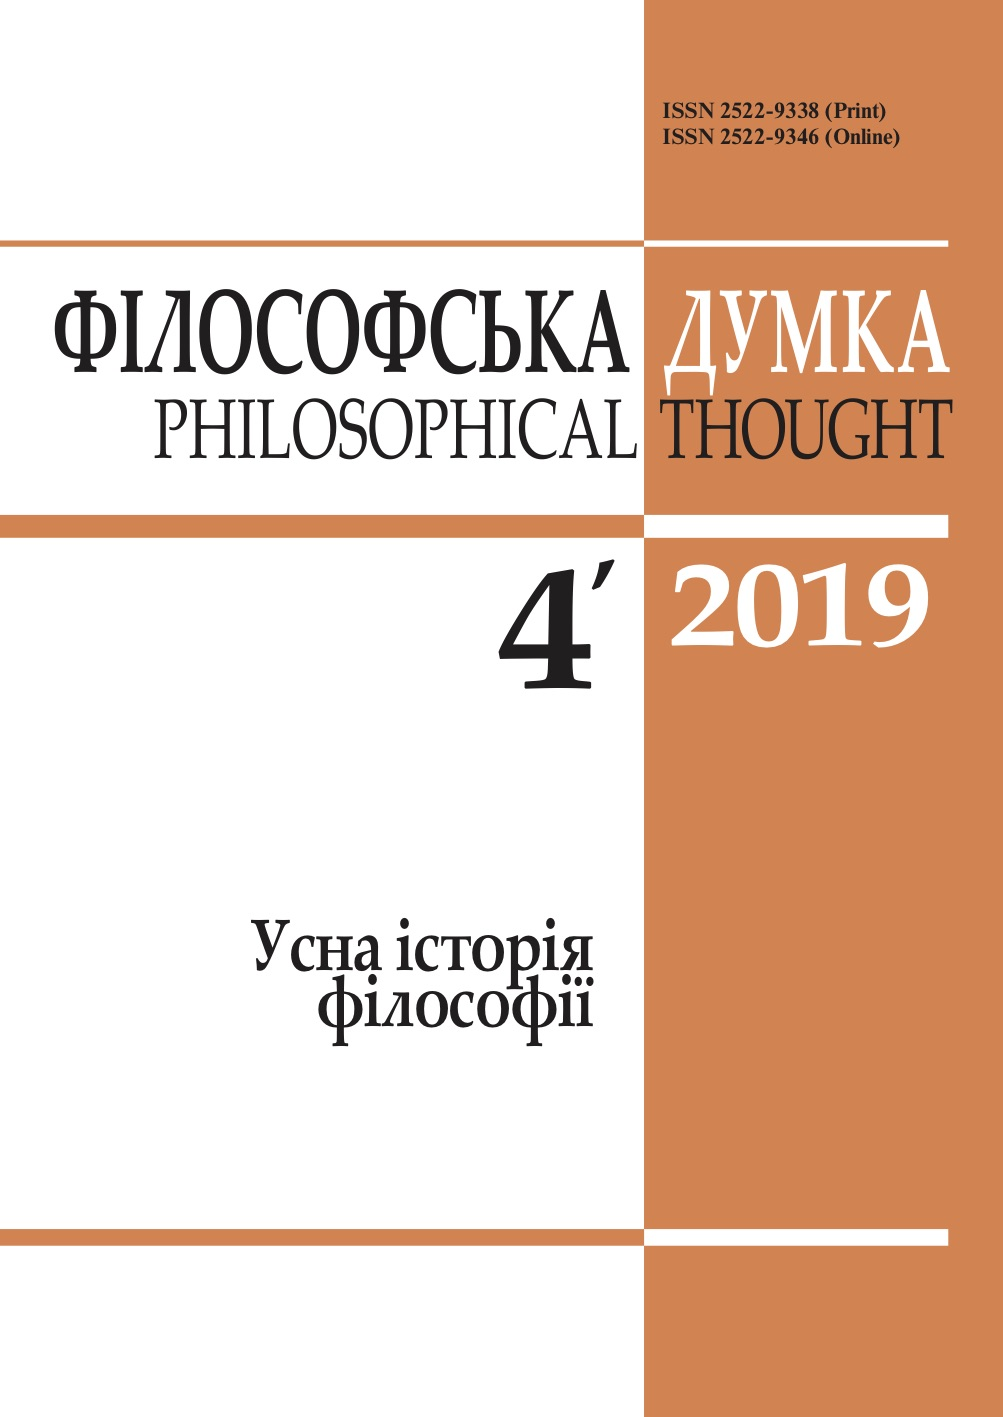 View No. 4 (2019): Philosophical thought